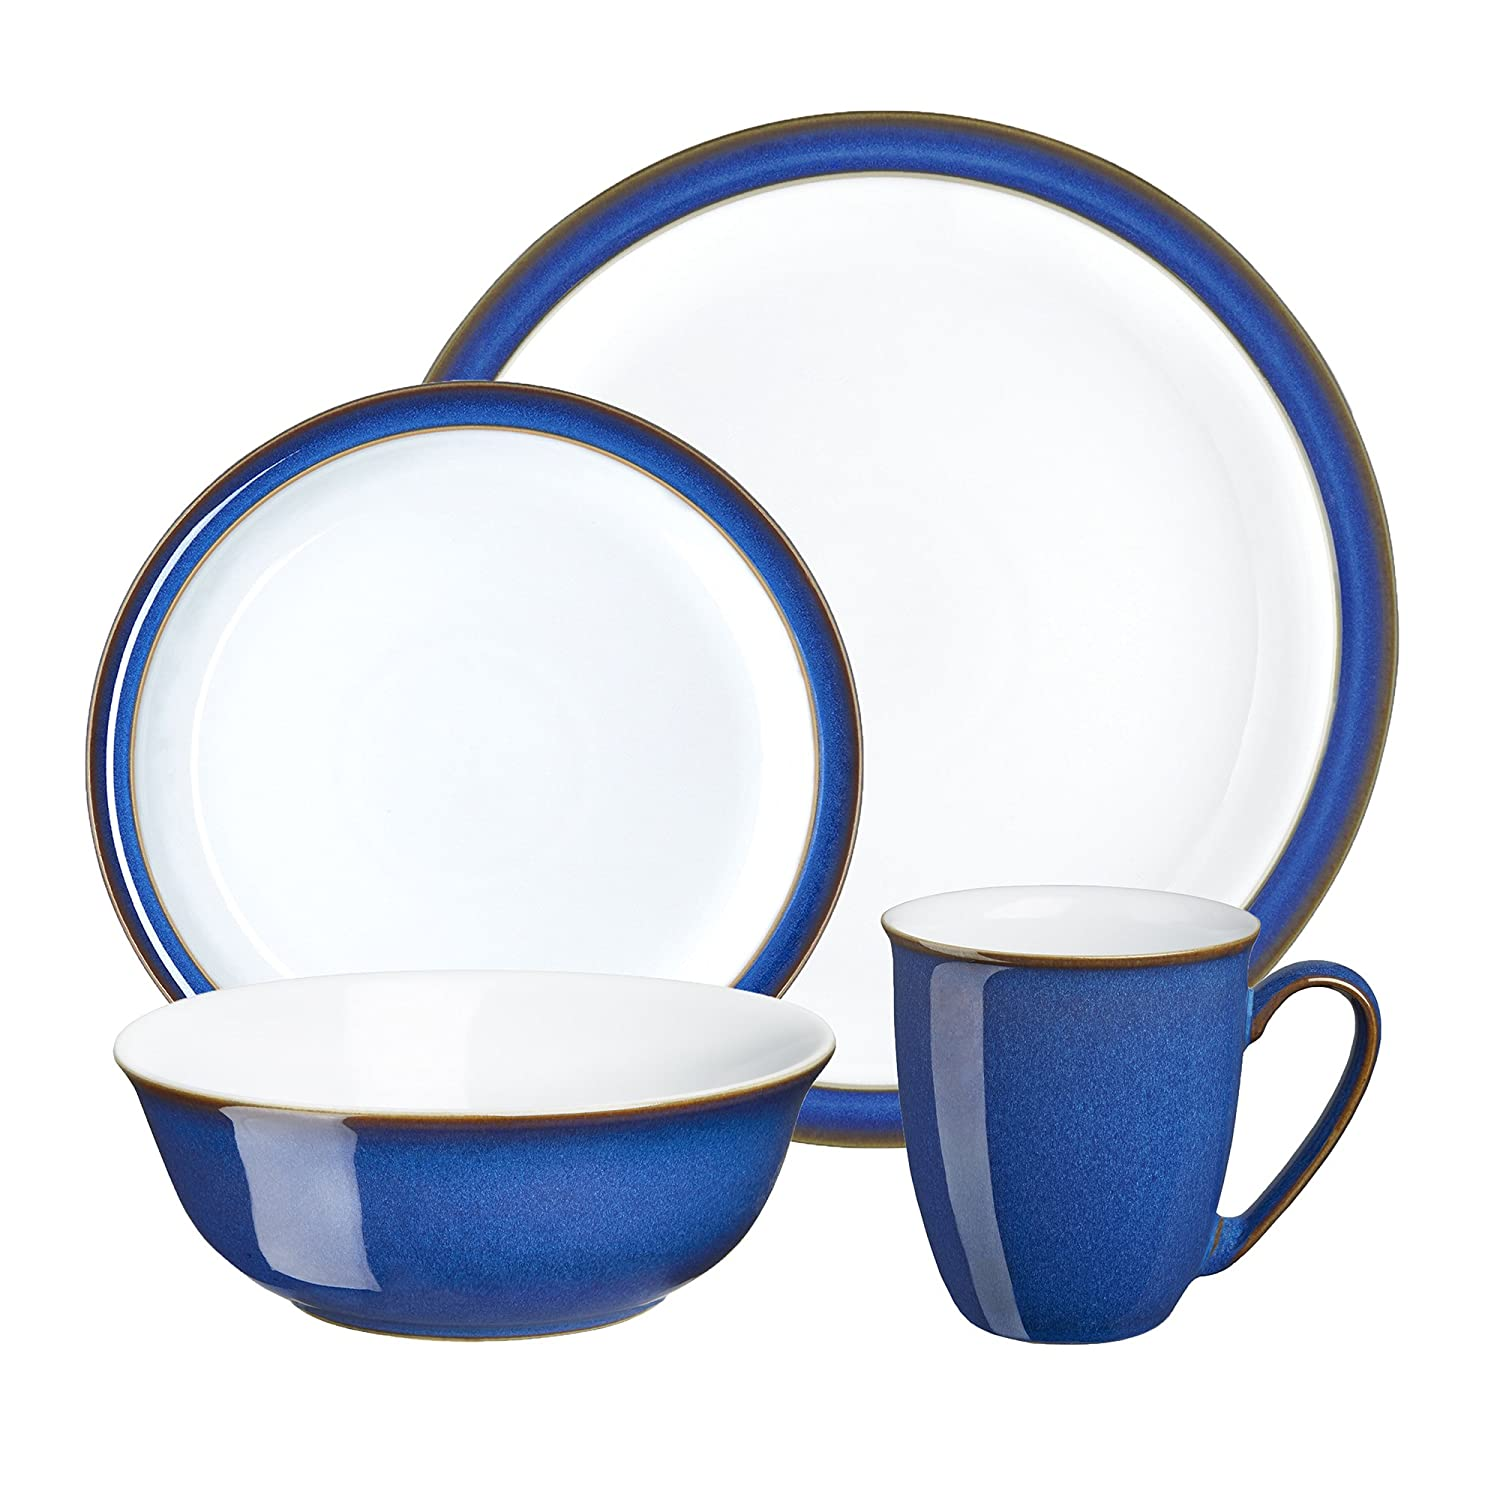 Denby Imperial Blue Boxed Tableware Set 16-Piece Amazon.co.uk Kitchen u0026 Home  sc 1 st  Amazon UK & Denby Imperial Blue Boxed Tableware Set 16-Piece: Amazon.co.uk ...